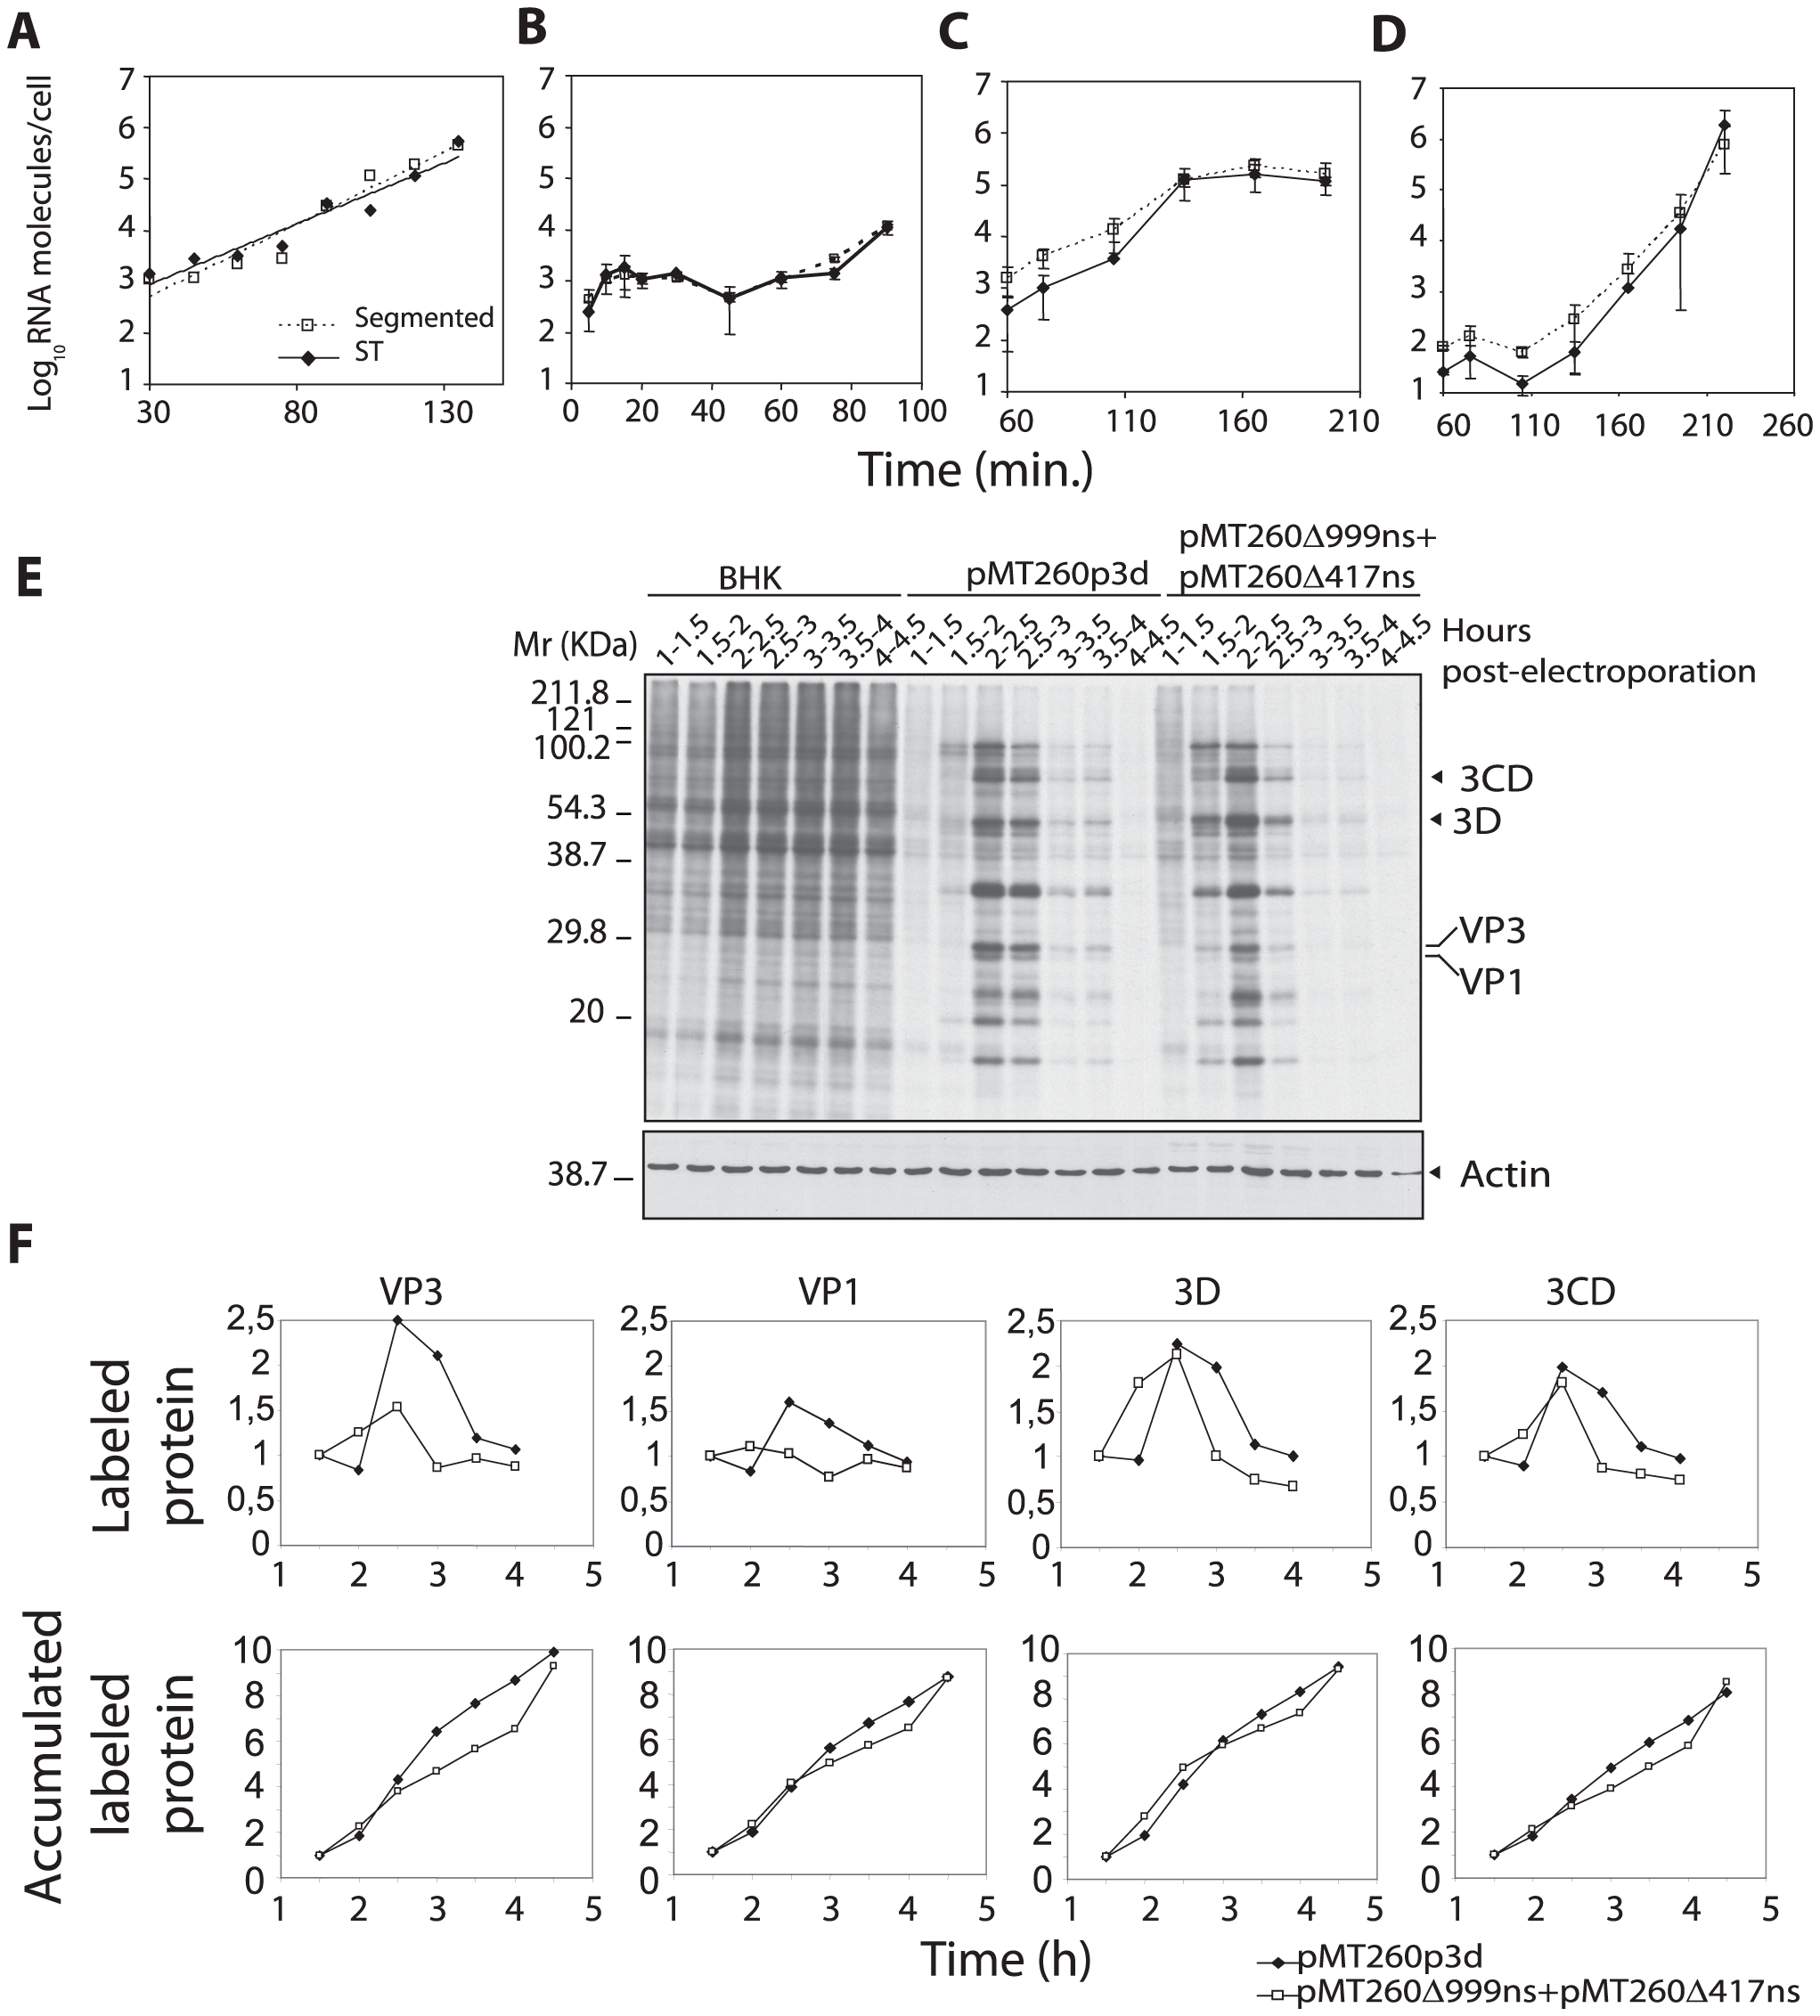 Replication kinetics of C-S8p260 (segmented) and C-S8p260p3d (ST) FMDV in BHK-21 cells.